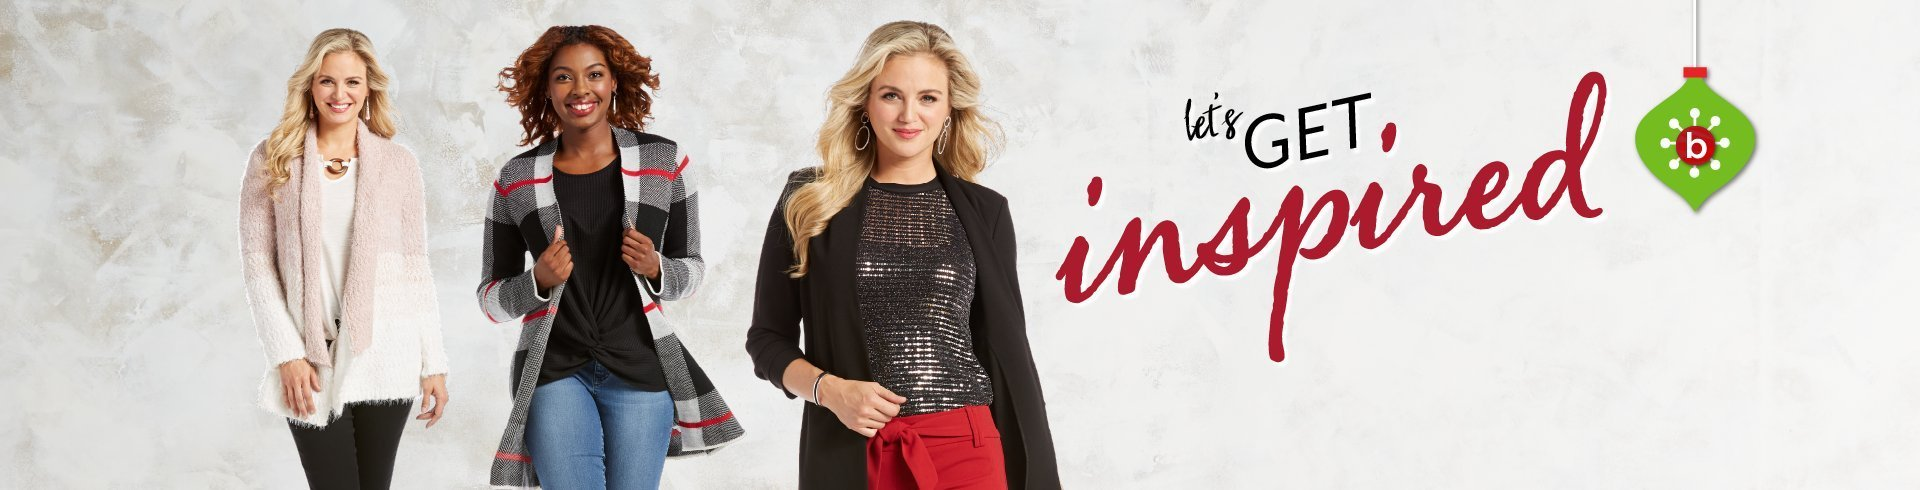 Holiday Fashion - Let's Get Gifting!